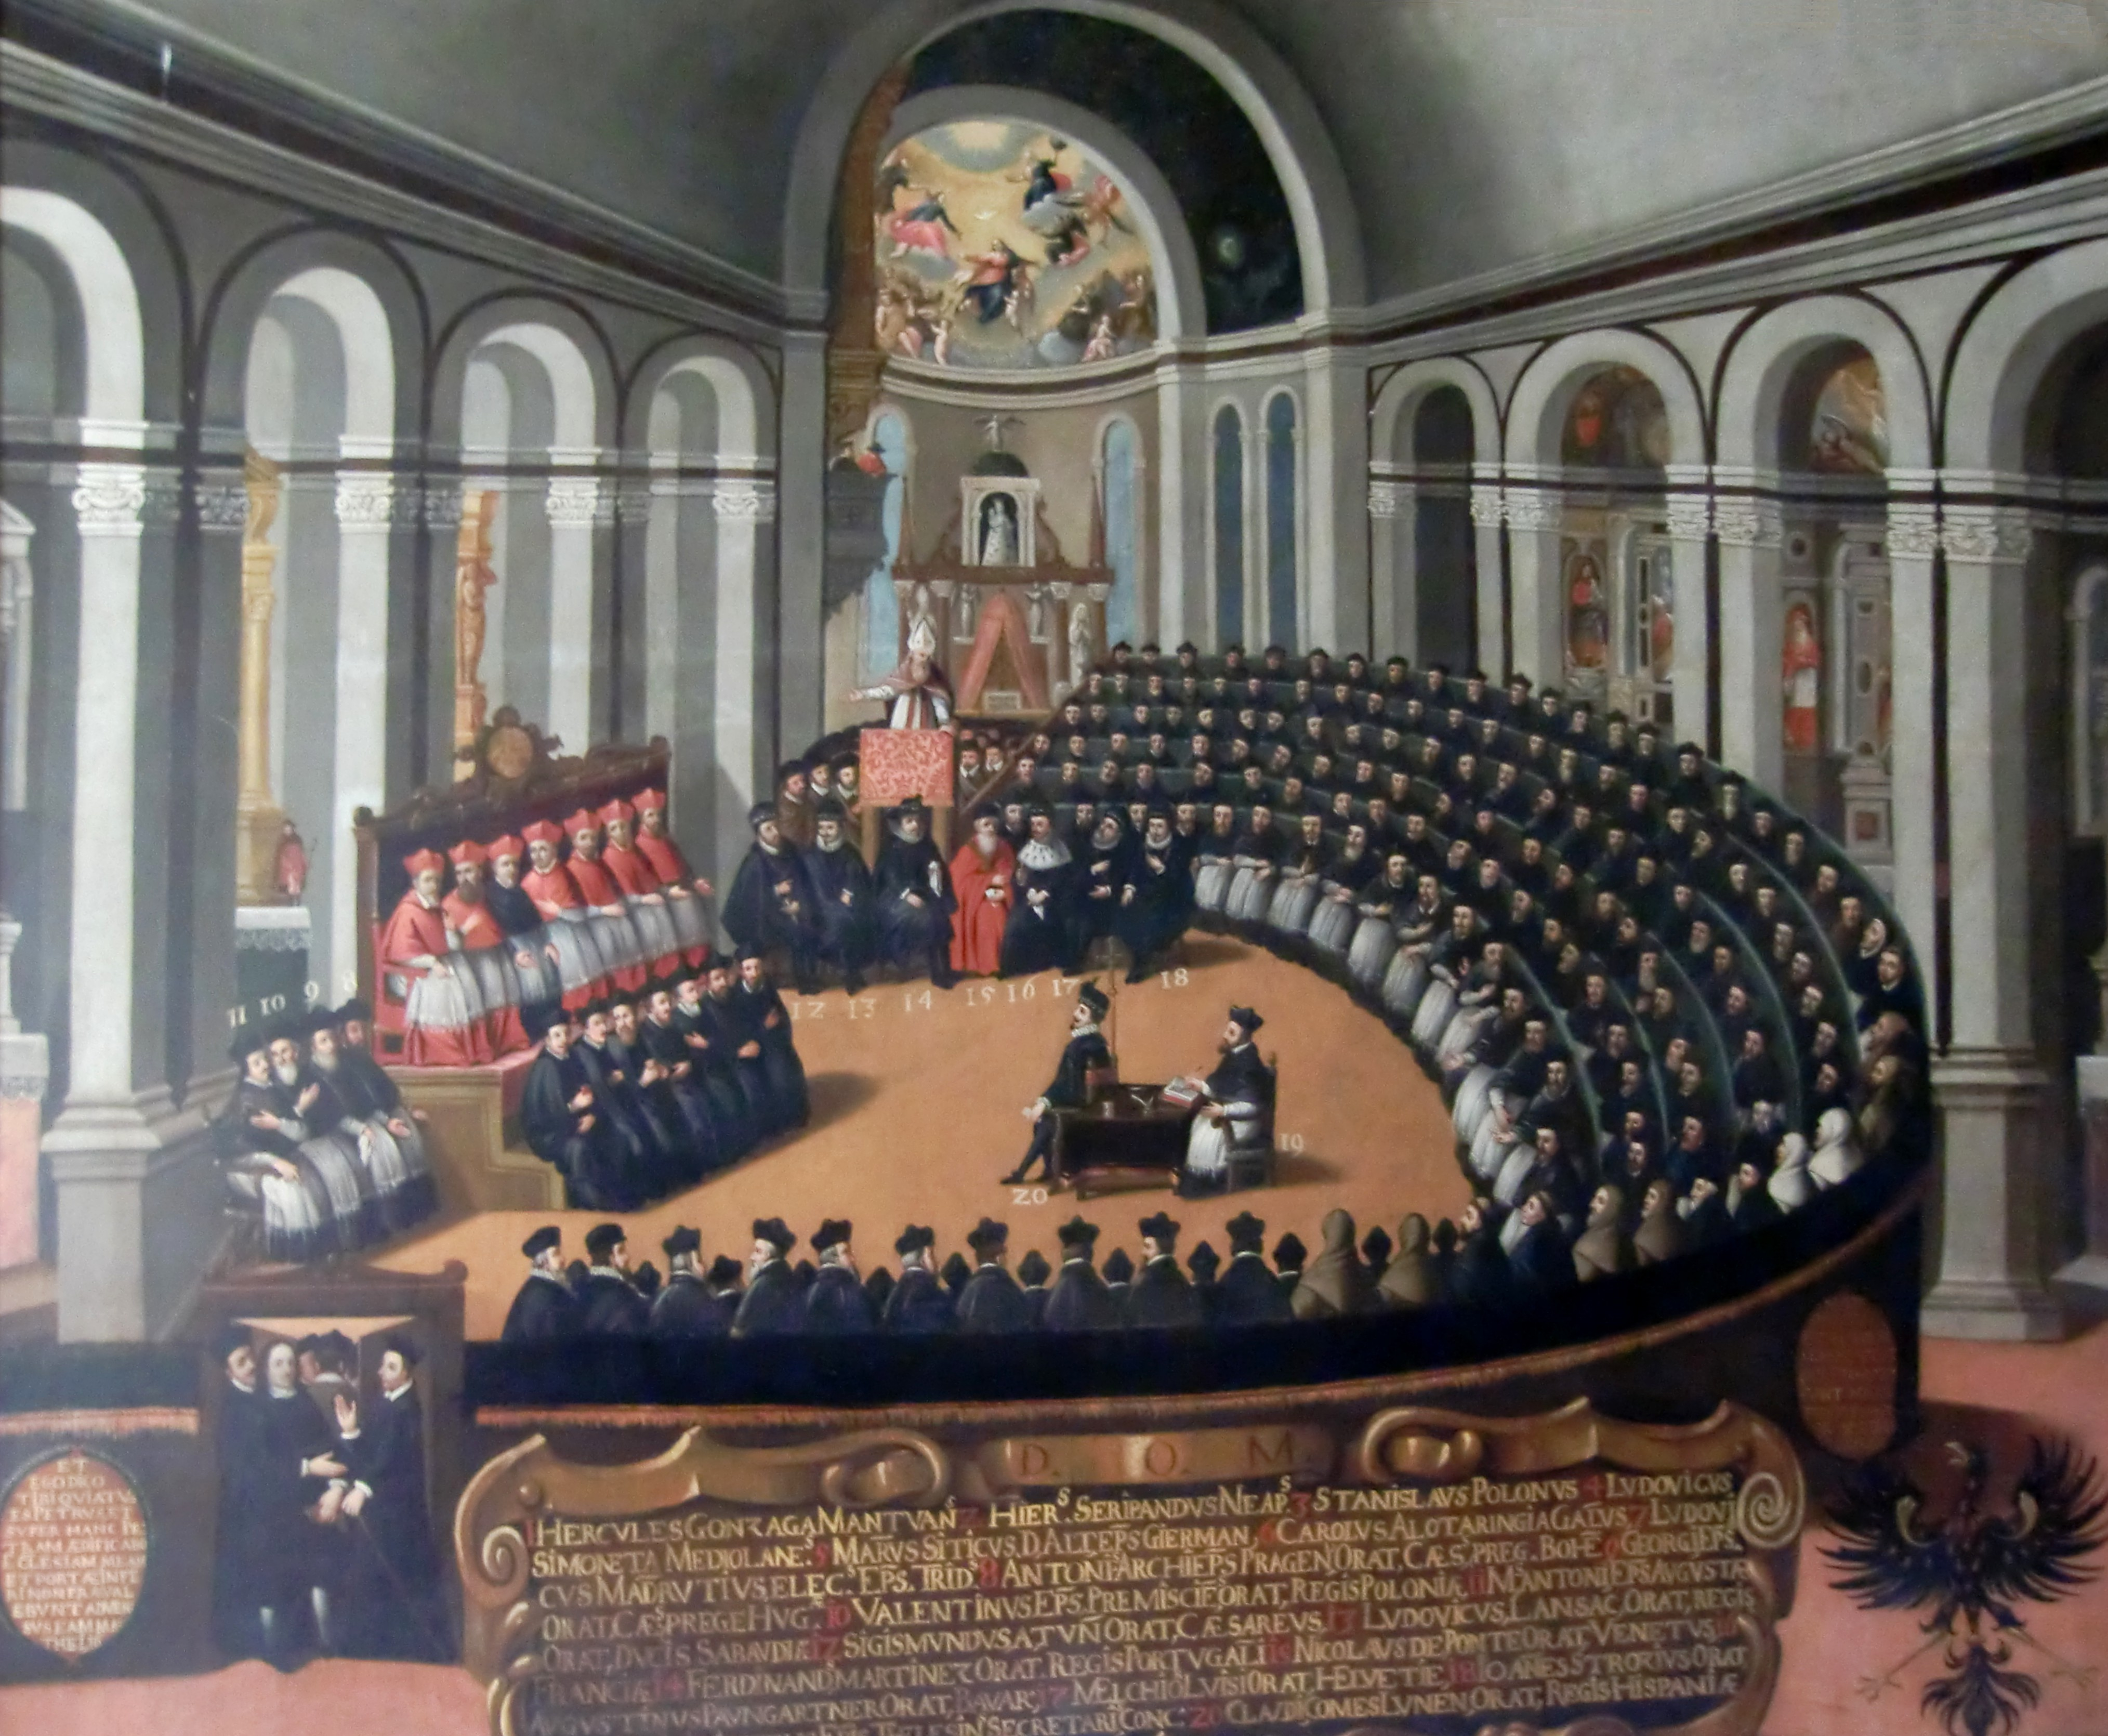 the council of trent The council of trent condemned the errors of the protestant revolters, and shone as a beacon to all the world its clear doctrines, authoritative pronouncements, and overall influence, has rightfully gained the council of trent its title as the greatest council.